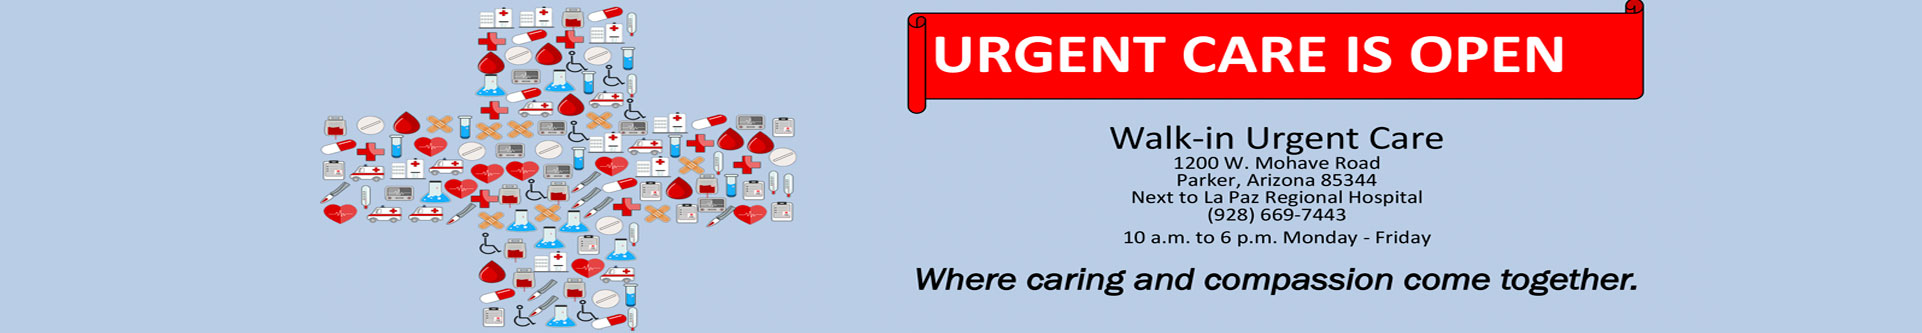 Urgent Care 10 am - 5:30 pm Monday thru Friday MINOR EMERGENCIES  MAJOR ATTENTION 1200 W. Mohave Road, Parker (928) 669-7230